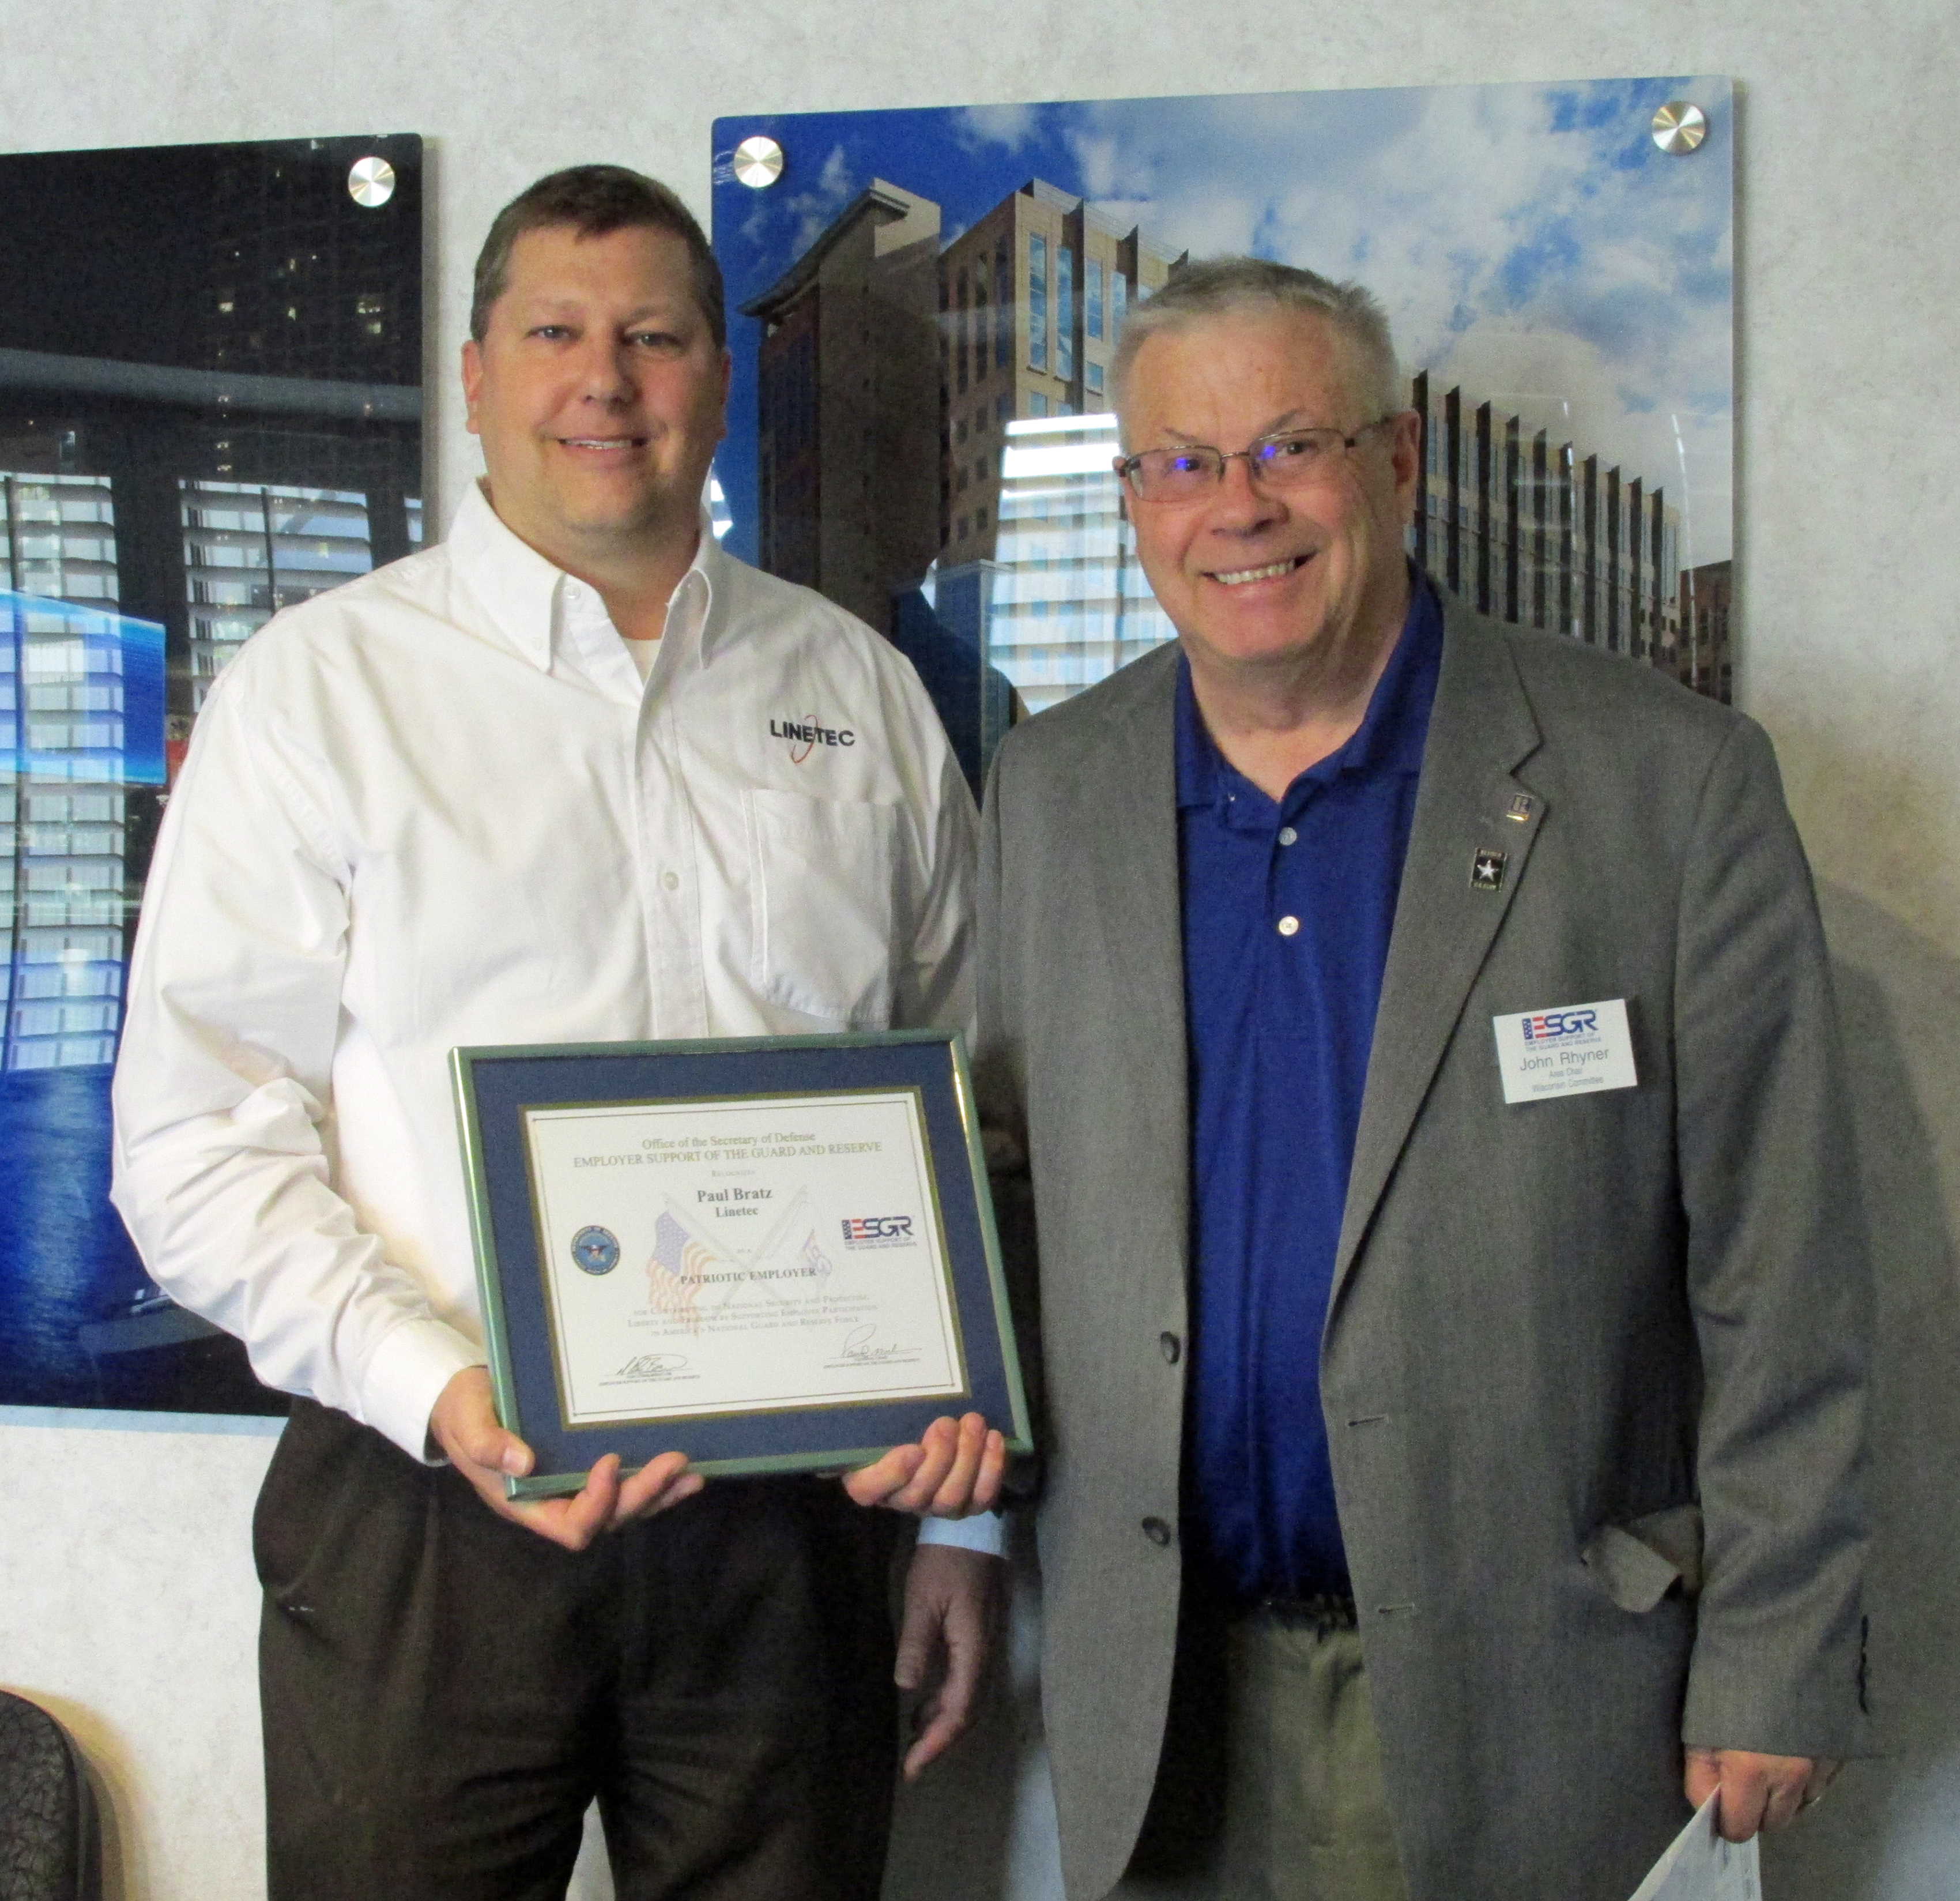 Heather West Pr Client News Kolbe Highlights Both: Heather West Public Relations :: Linetec Honored With